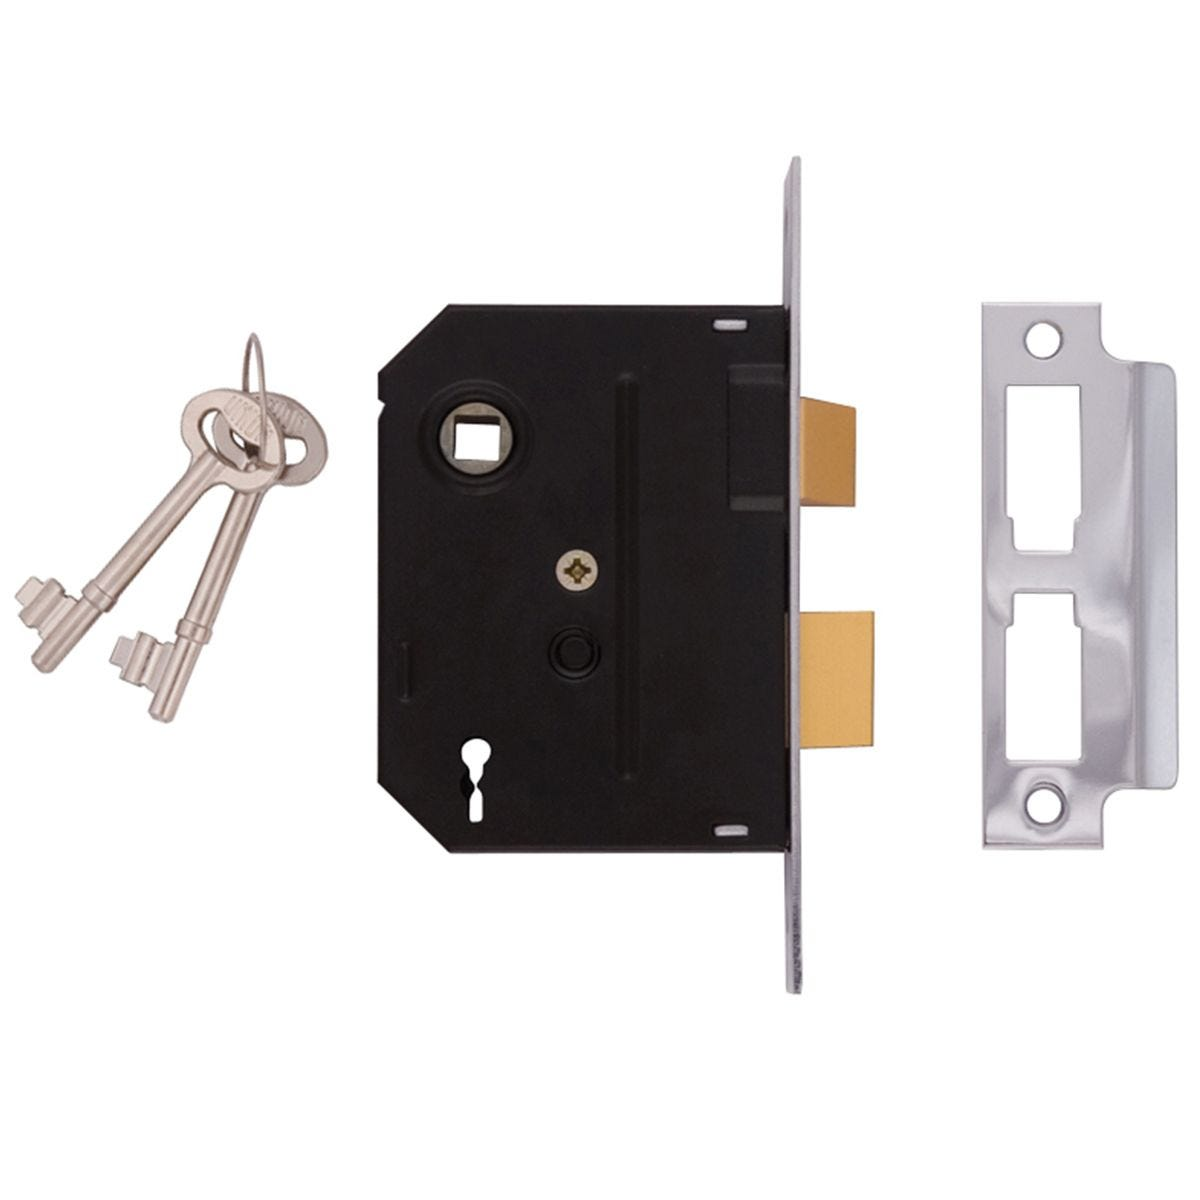 Union 2295 2 Lever Mortice Sashlock Chrome Finish 63mm 2.5in Box